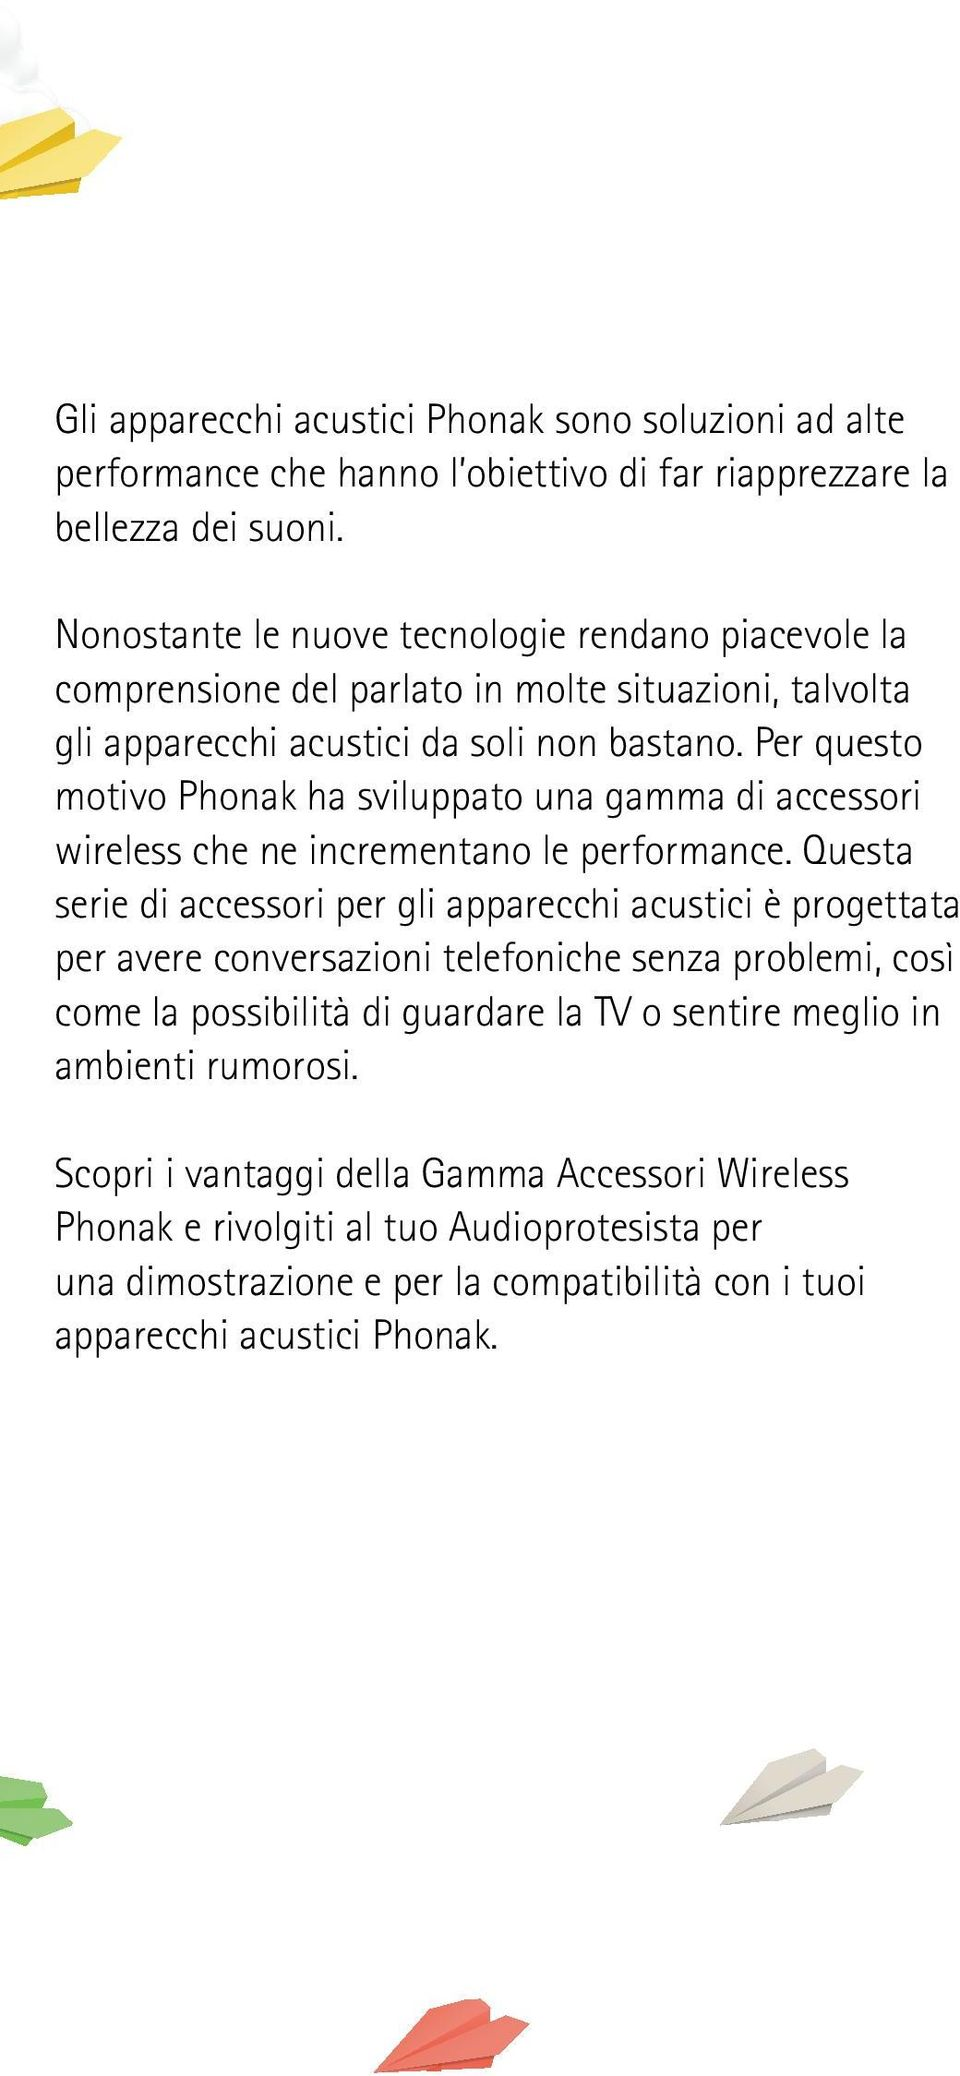 Per questo motivo Phonak ha sviluppato una gamma di accessori wireless che ne incrementano le performance.